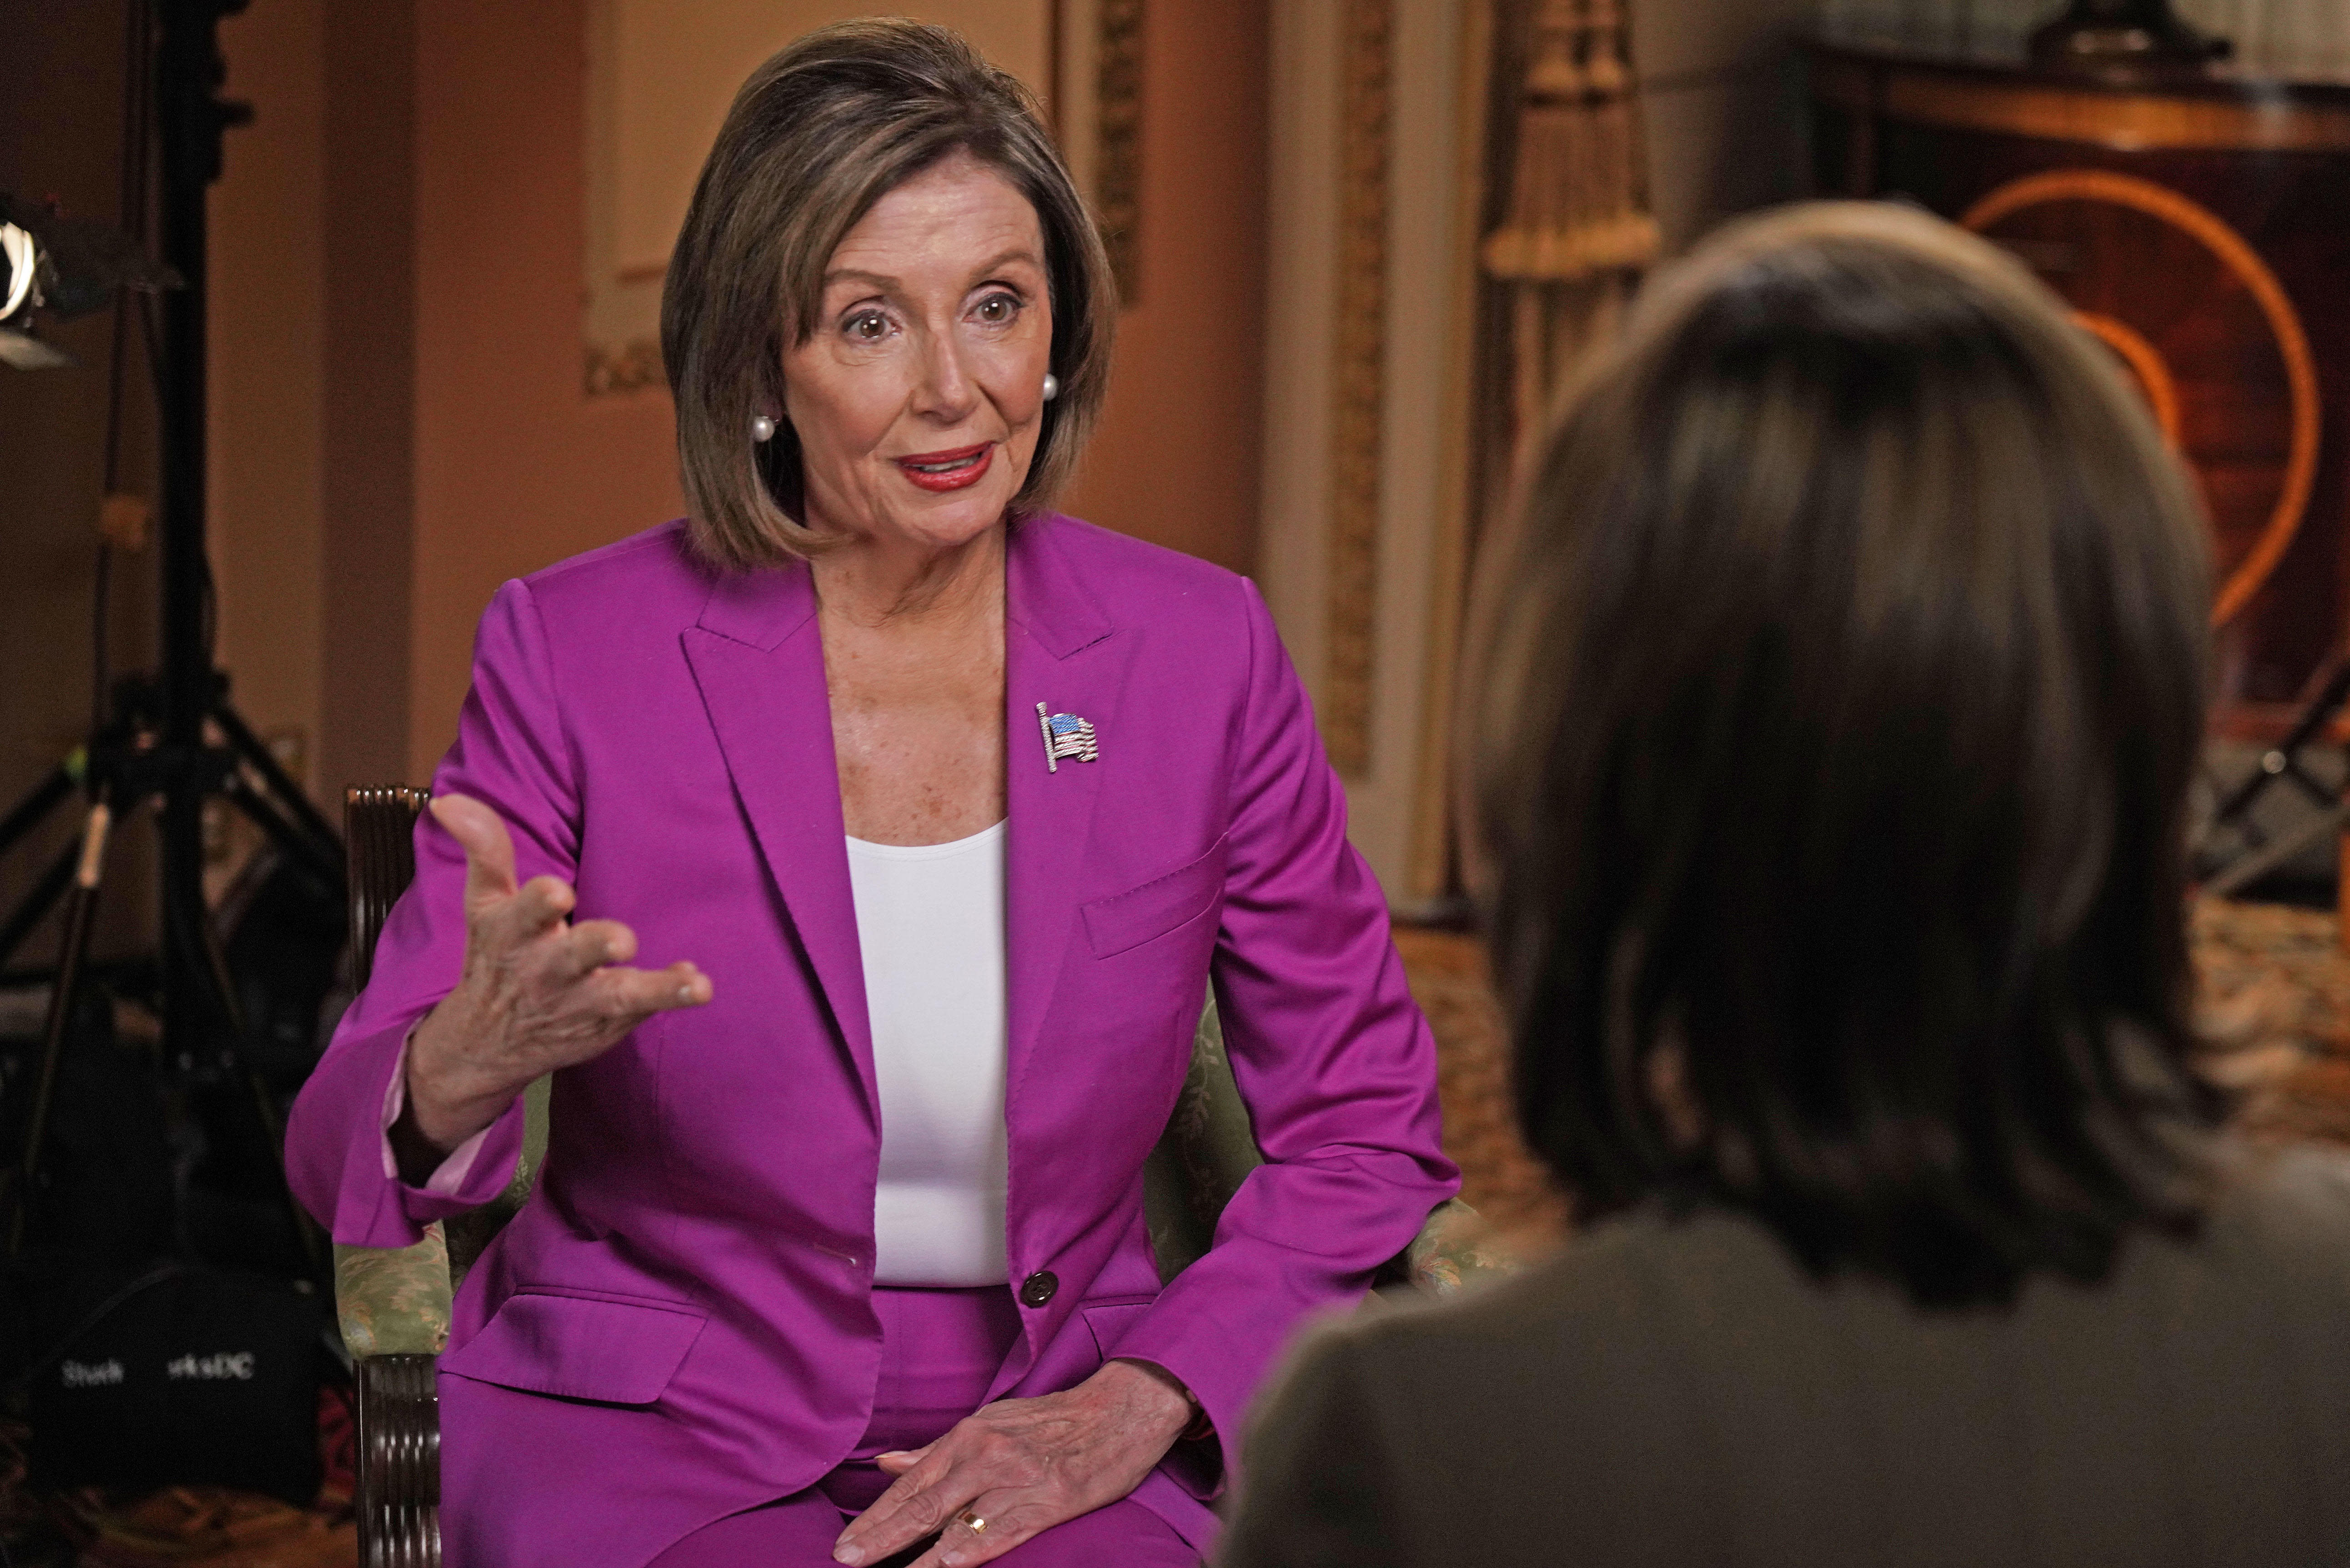 Pelosi to attend climate summit amid withdrawal from climate deal